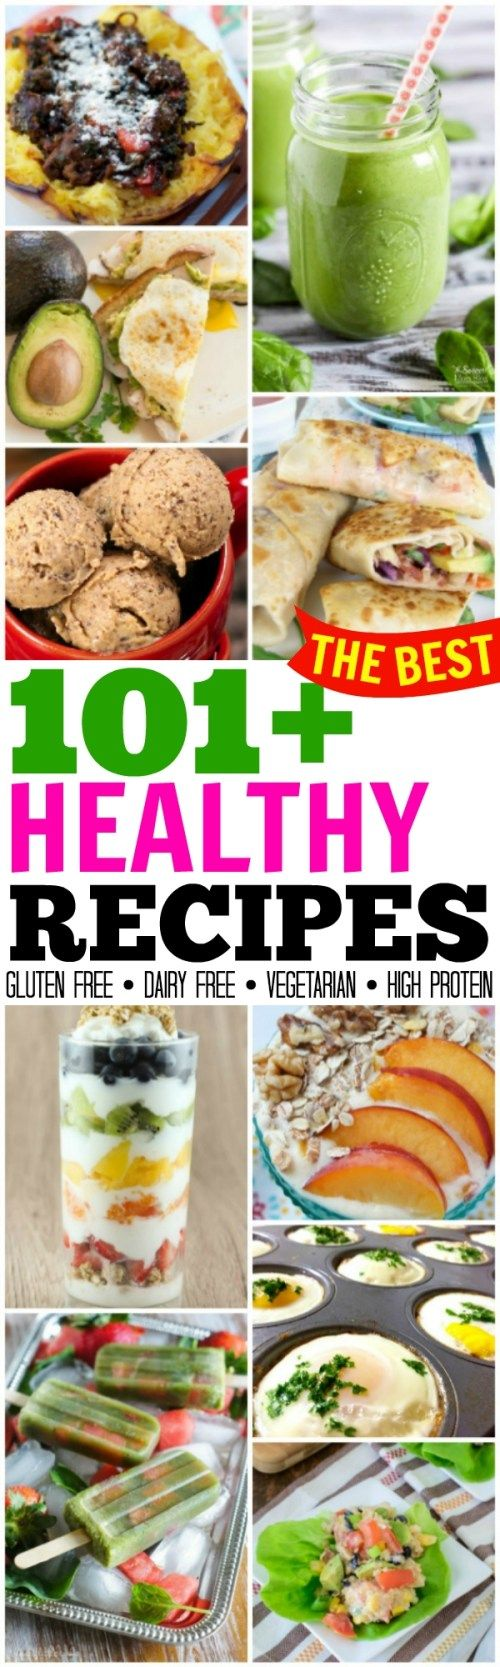 TONS of amazing options in this collection of 101  Healthy Recipes to feel better and lose weight! Gluten free, dairy free, high protein, vegetarian